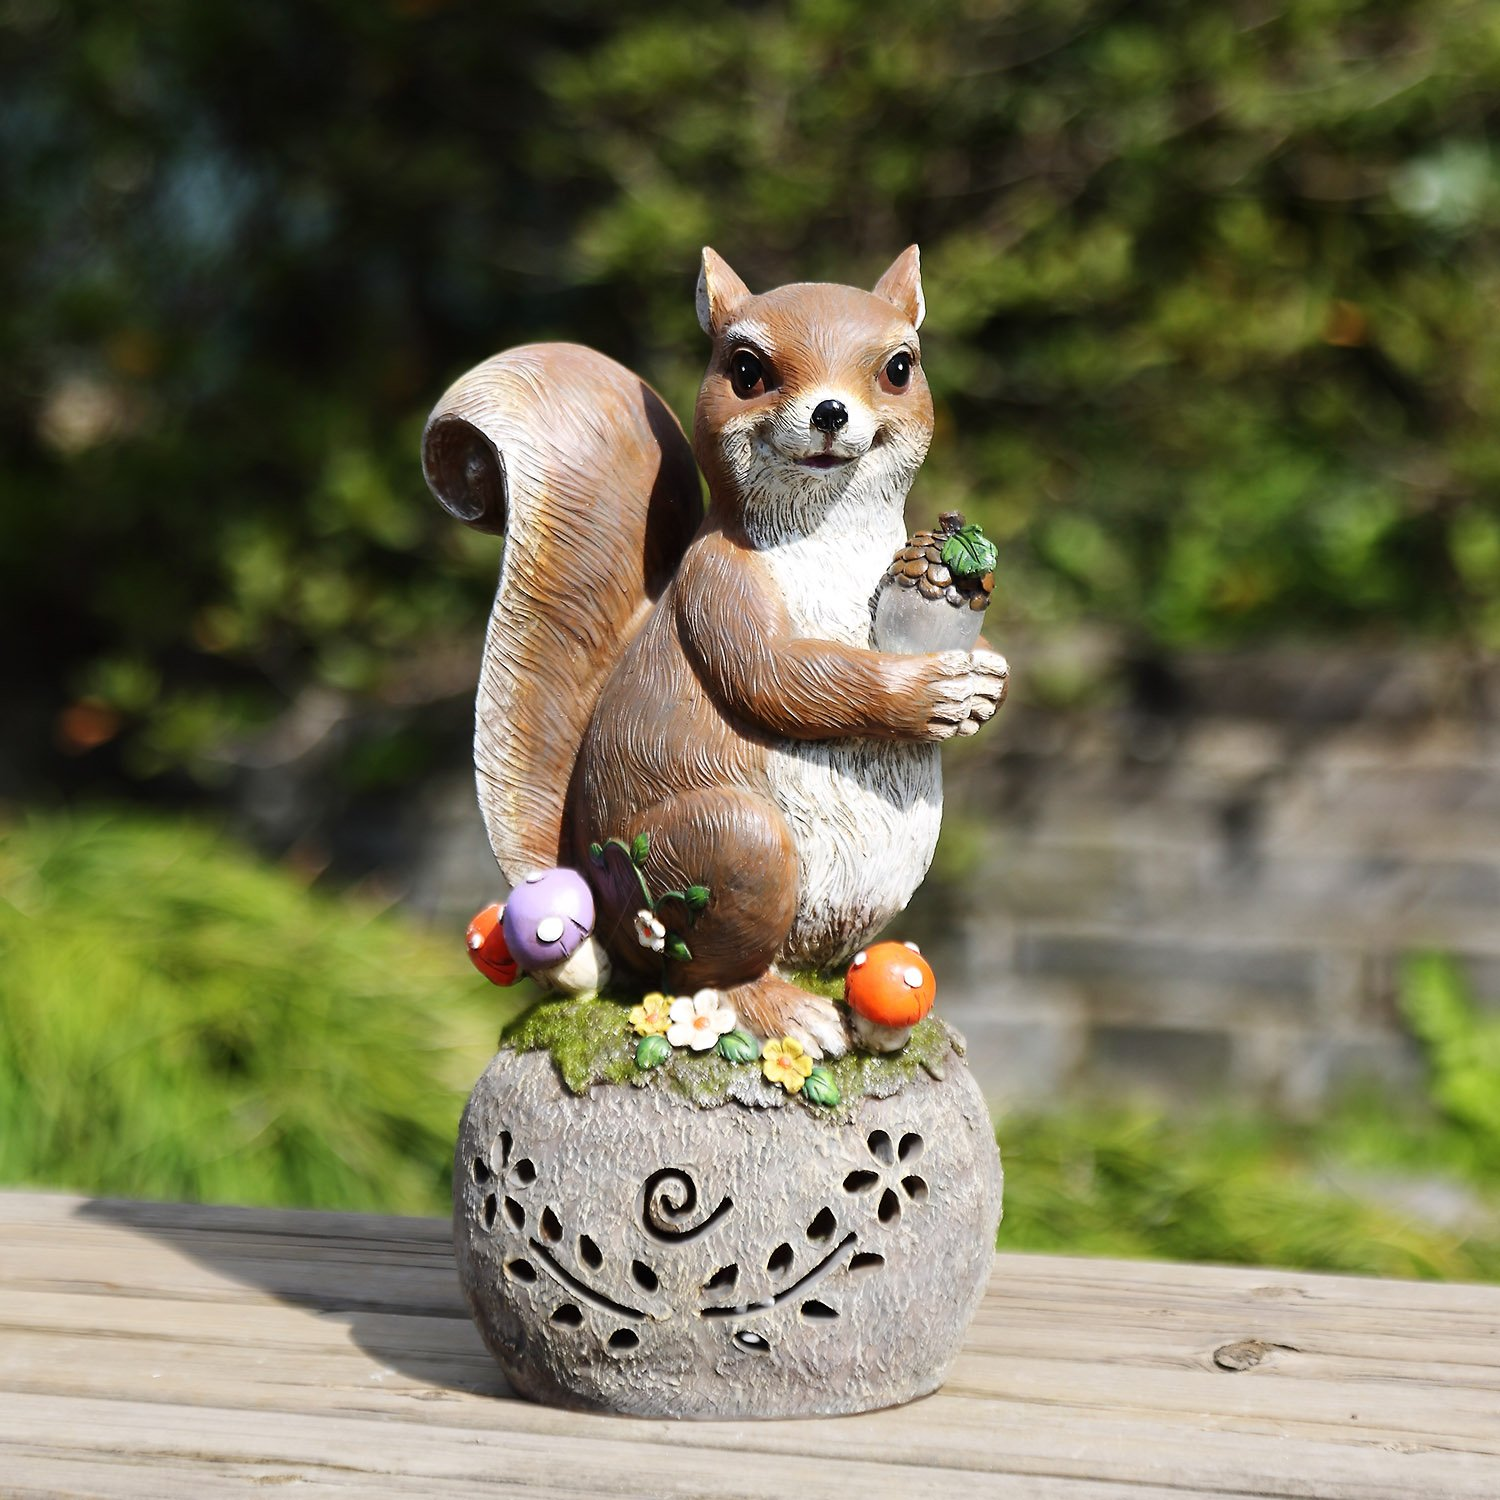 Ivy Home Solar Statues for Garden,the Squirrel Carried a Nut